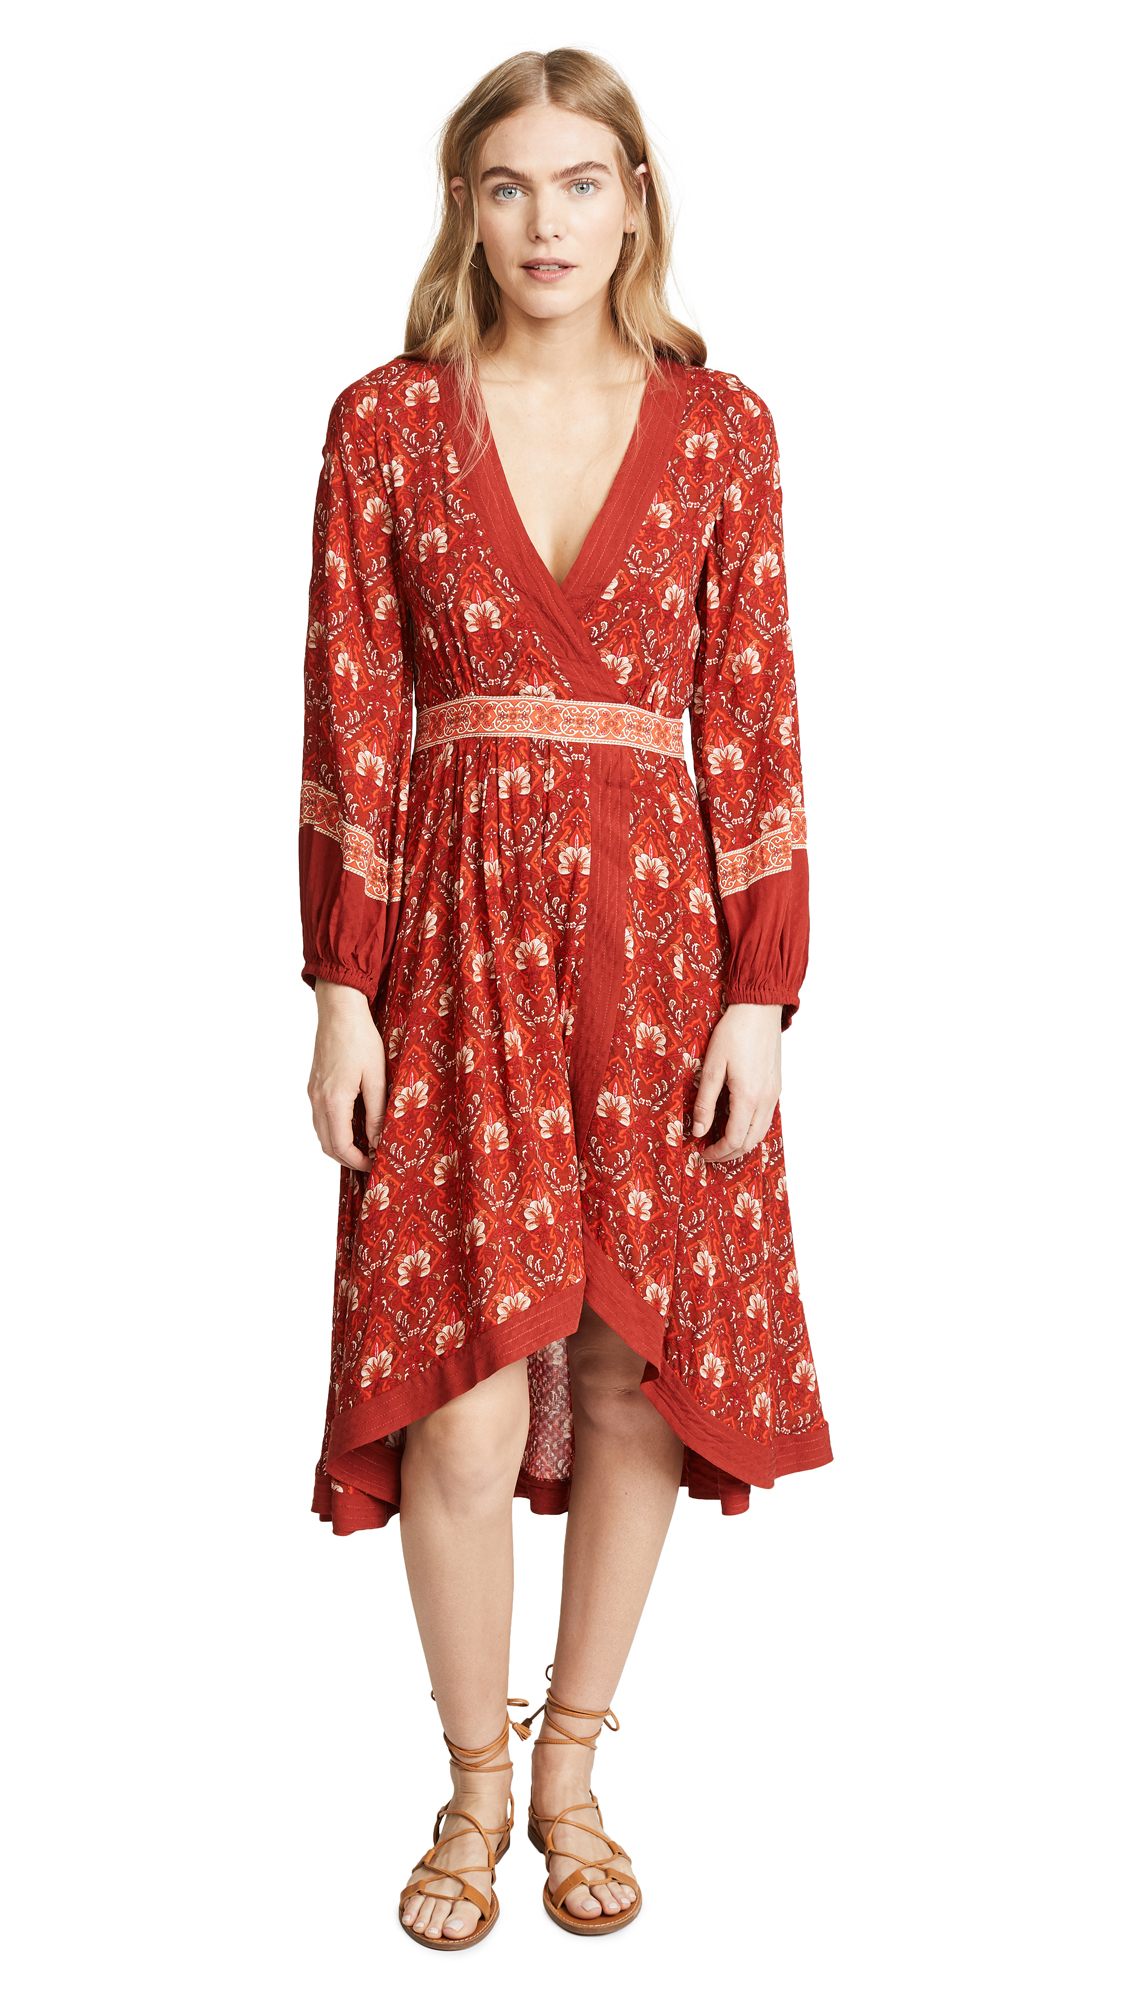 favourite-womens-clothing-brands-spell-shopbop2